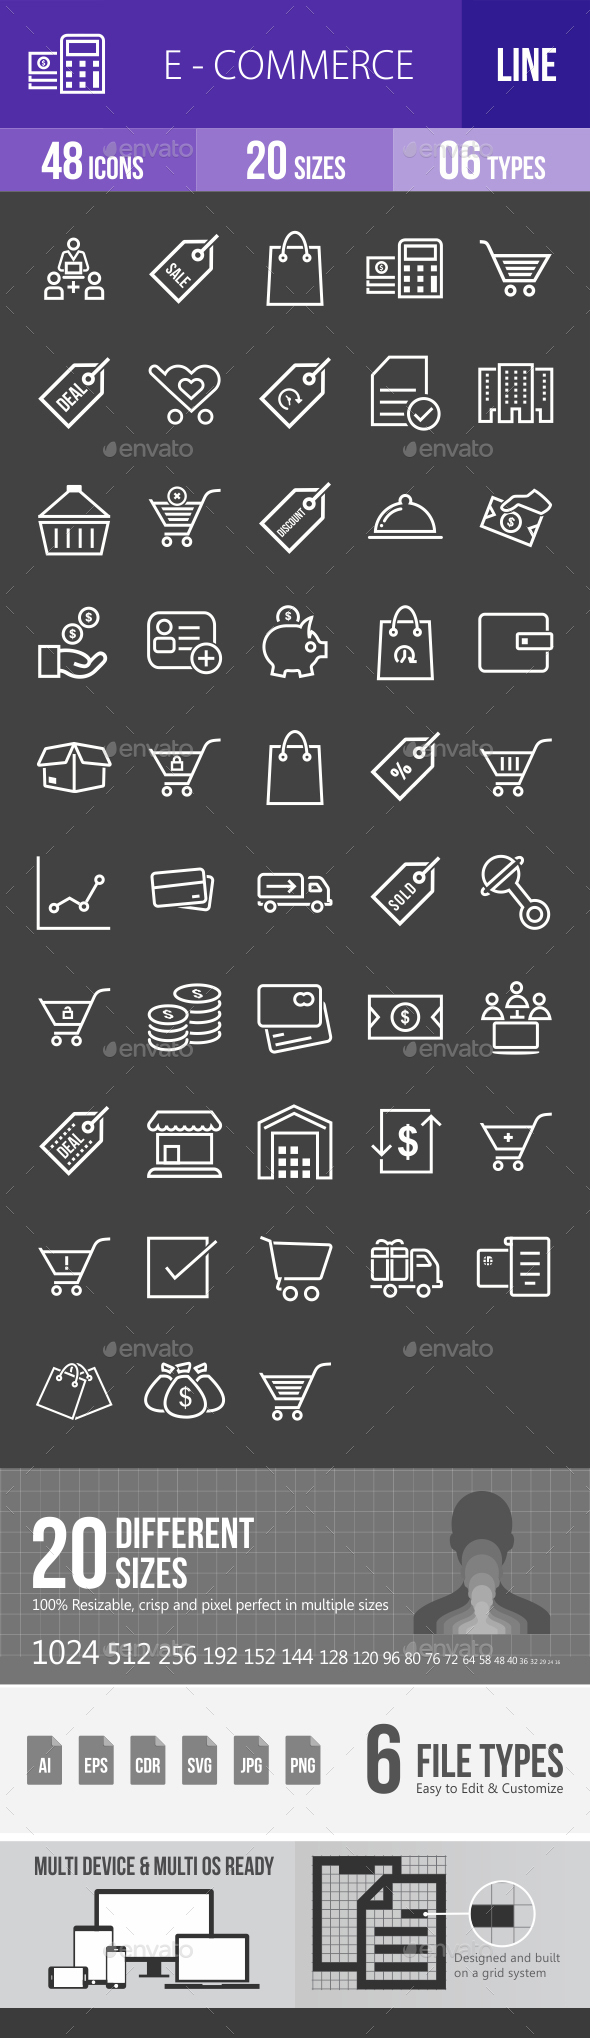 Ecommerce Line Inverted Icons - Icons